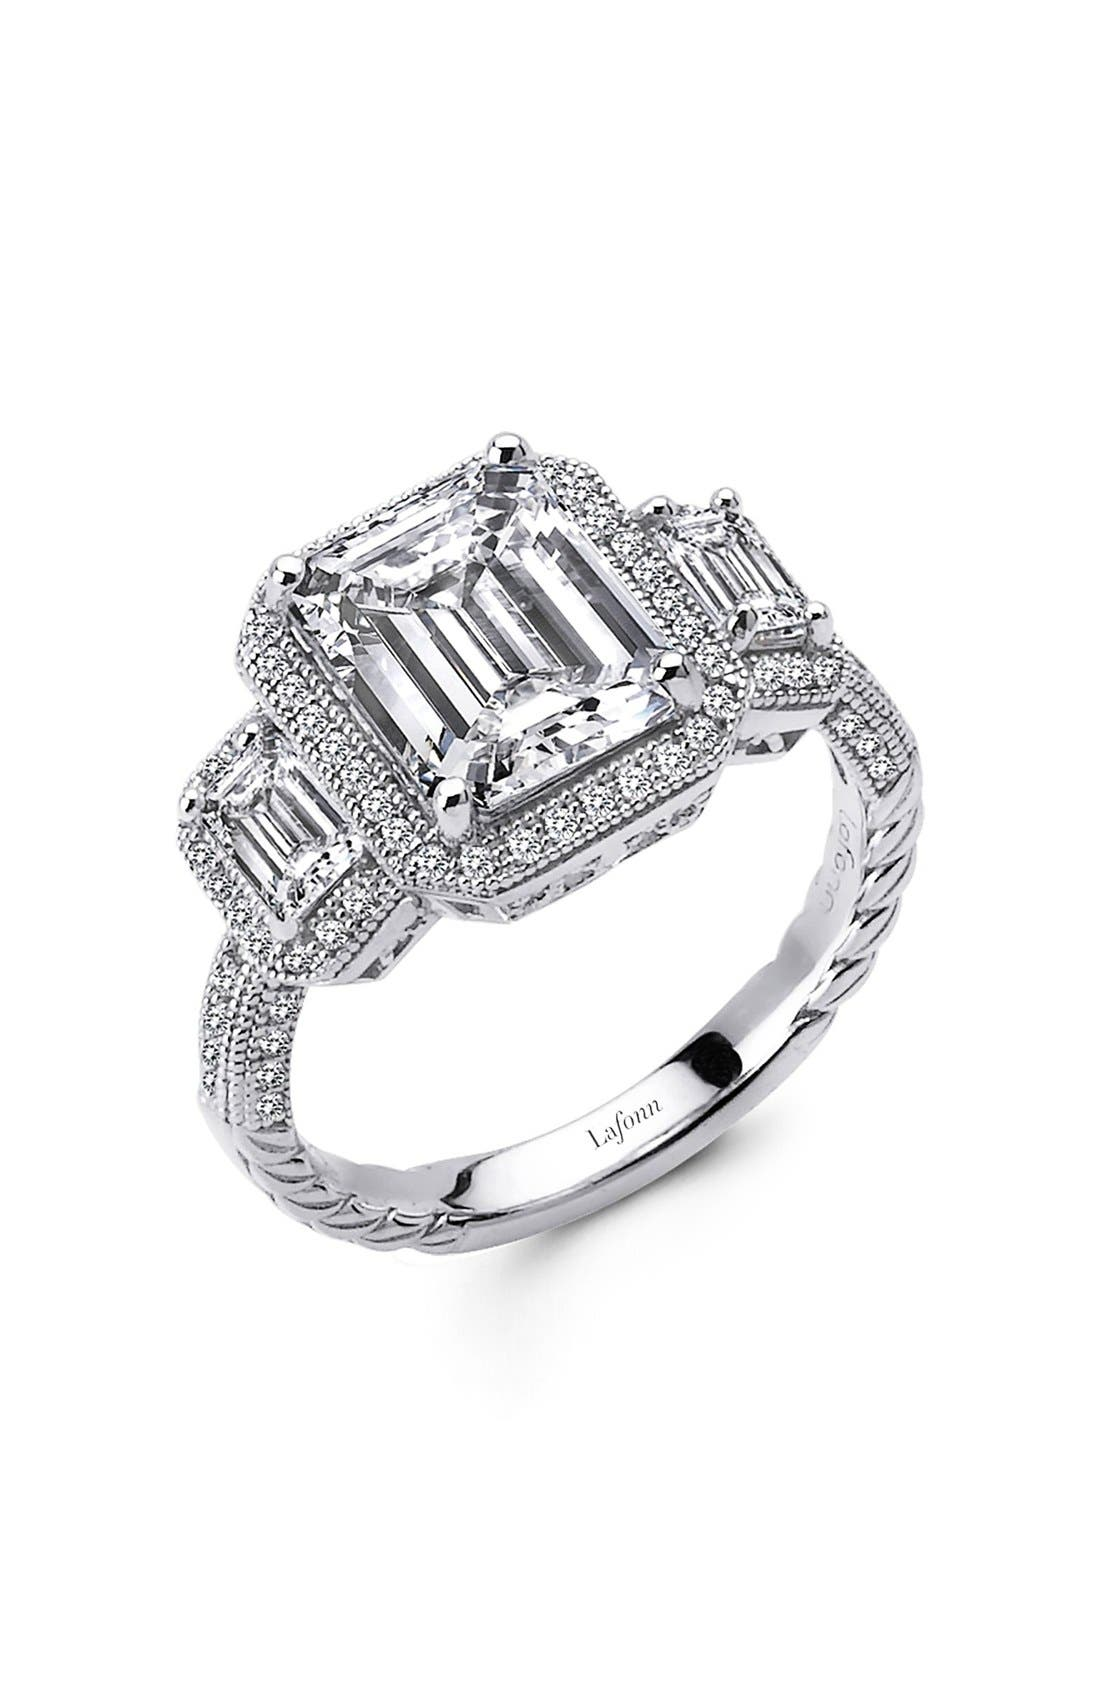 Three emerald-cut simulated diamonds traced with sparkling jewels add timeless glamour to a striking ring that makes the perfect engagement ring for someone special. Style Name: Lafonn \\\'Lassaire\\\' Three Stone Ring. Style Number: 5164259. Available in stores.